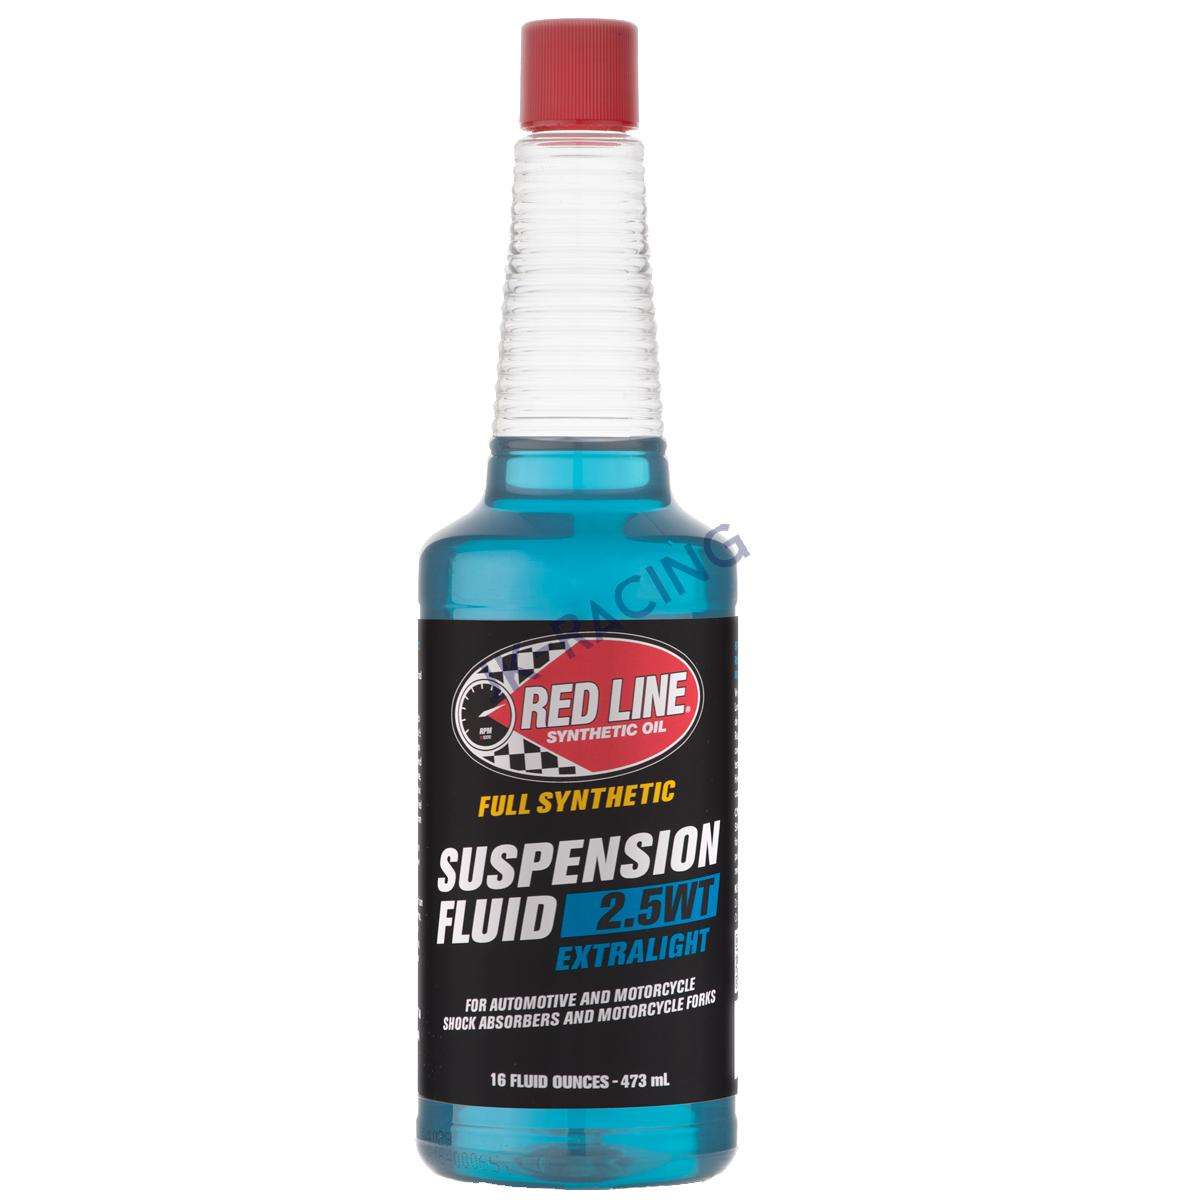 Tlumičový olej Red Line Extralight 2.5WT Suspension fluid - 473ml